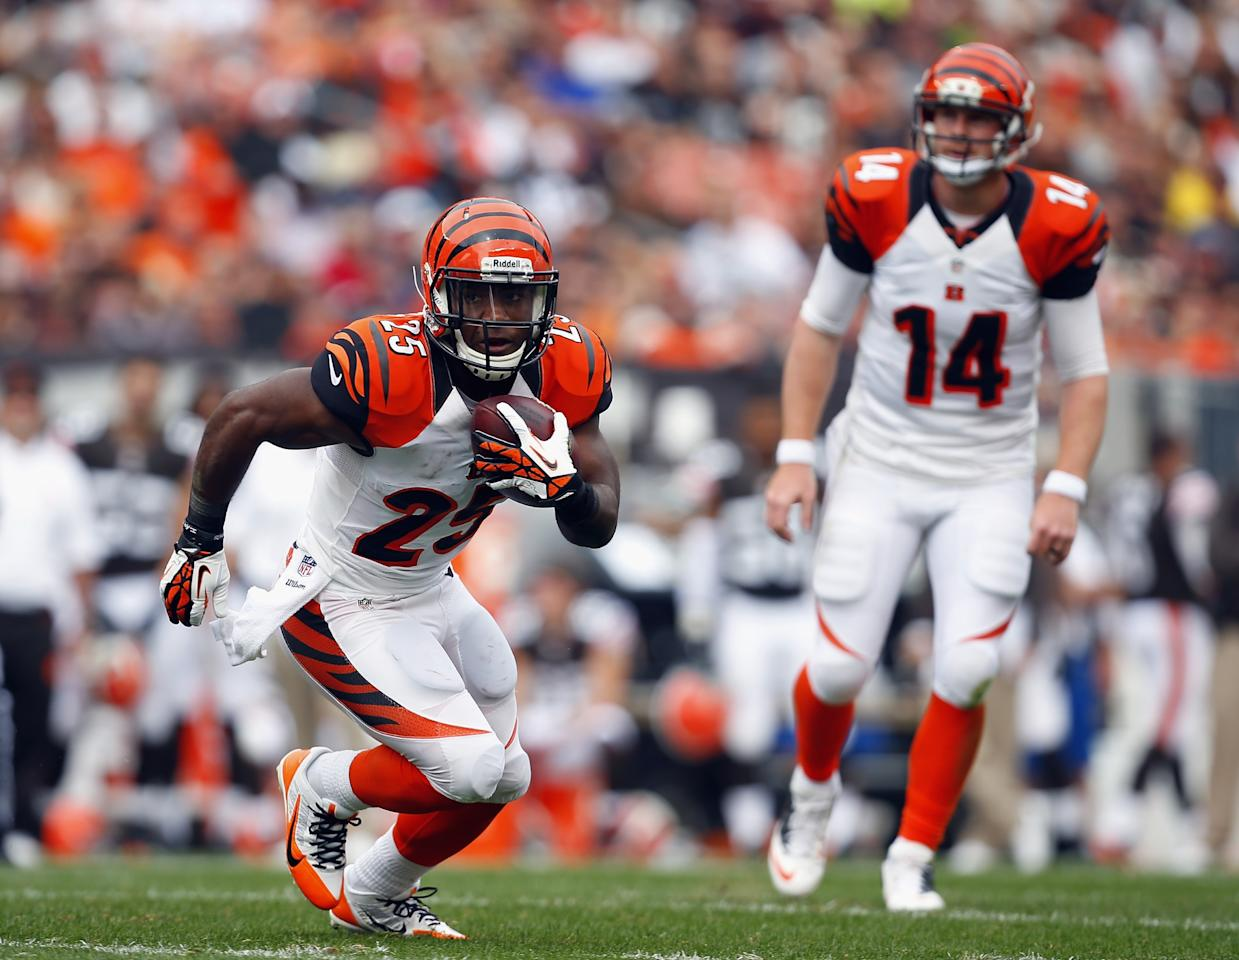 CLEVELAND, OH - SEPTEMBER 29: Half back Giovani Bernard #25 of the Cincinnati Bengals runs the ball as quarterback Andy Dalton #14 looks on against the Cleveland Browns at FirstEnergy Stadium on September 29, 2013 in Cleveland, Ohio. (Photo by Matt Sullivan/Getty Images)